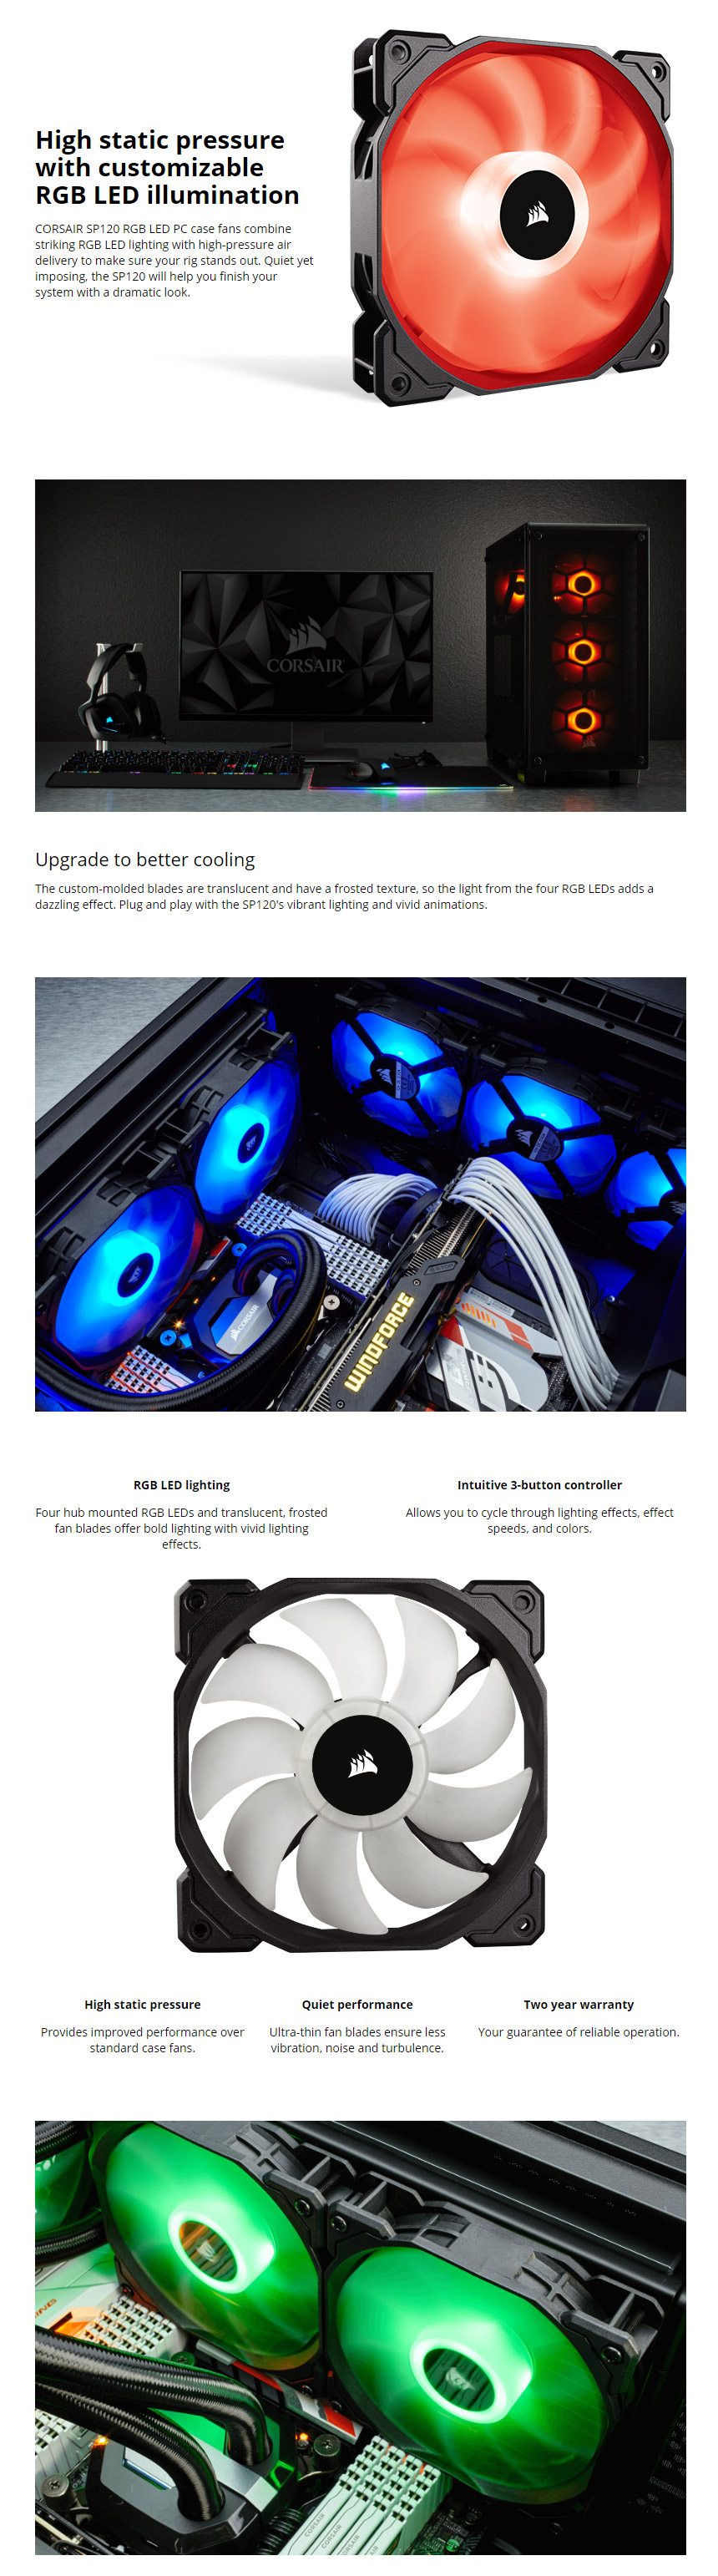 Corsair Sp120 Rgb Led 120mm Fans 3 Pack With Controller Co 9050061 The Will Help You Finish Your System A Dramatic Look Includes Fan And 6 Port Hub